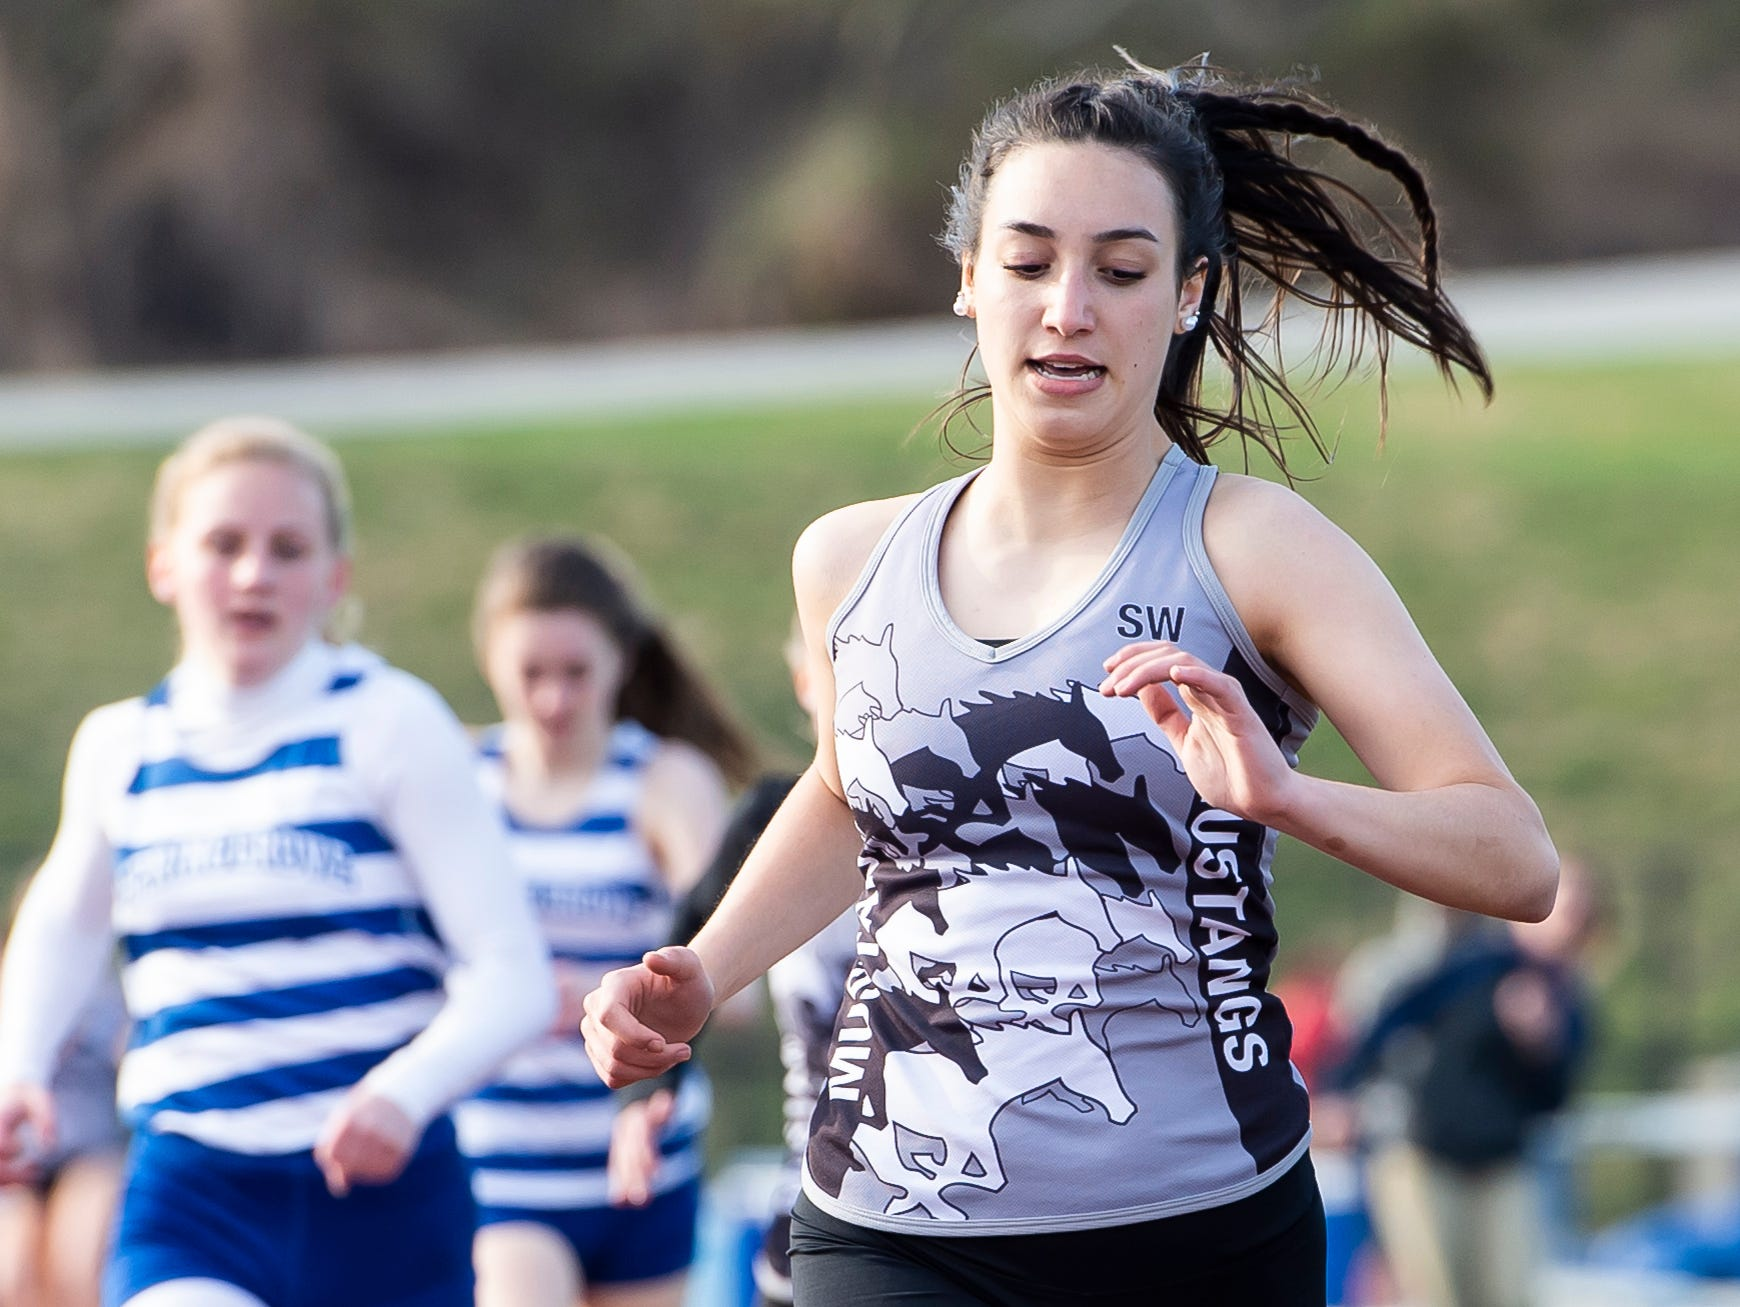 South Western' Bella Gilberto takes first in the girls' 800m during a track and field meet against Spring Grove on Thursday, April 11, 2019.